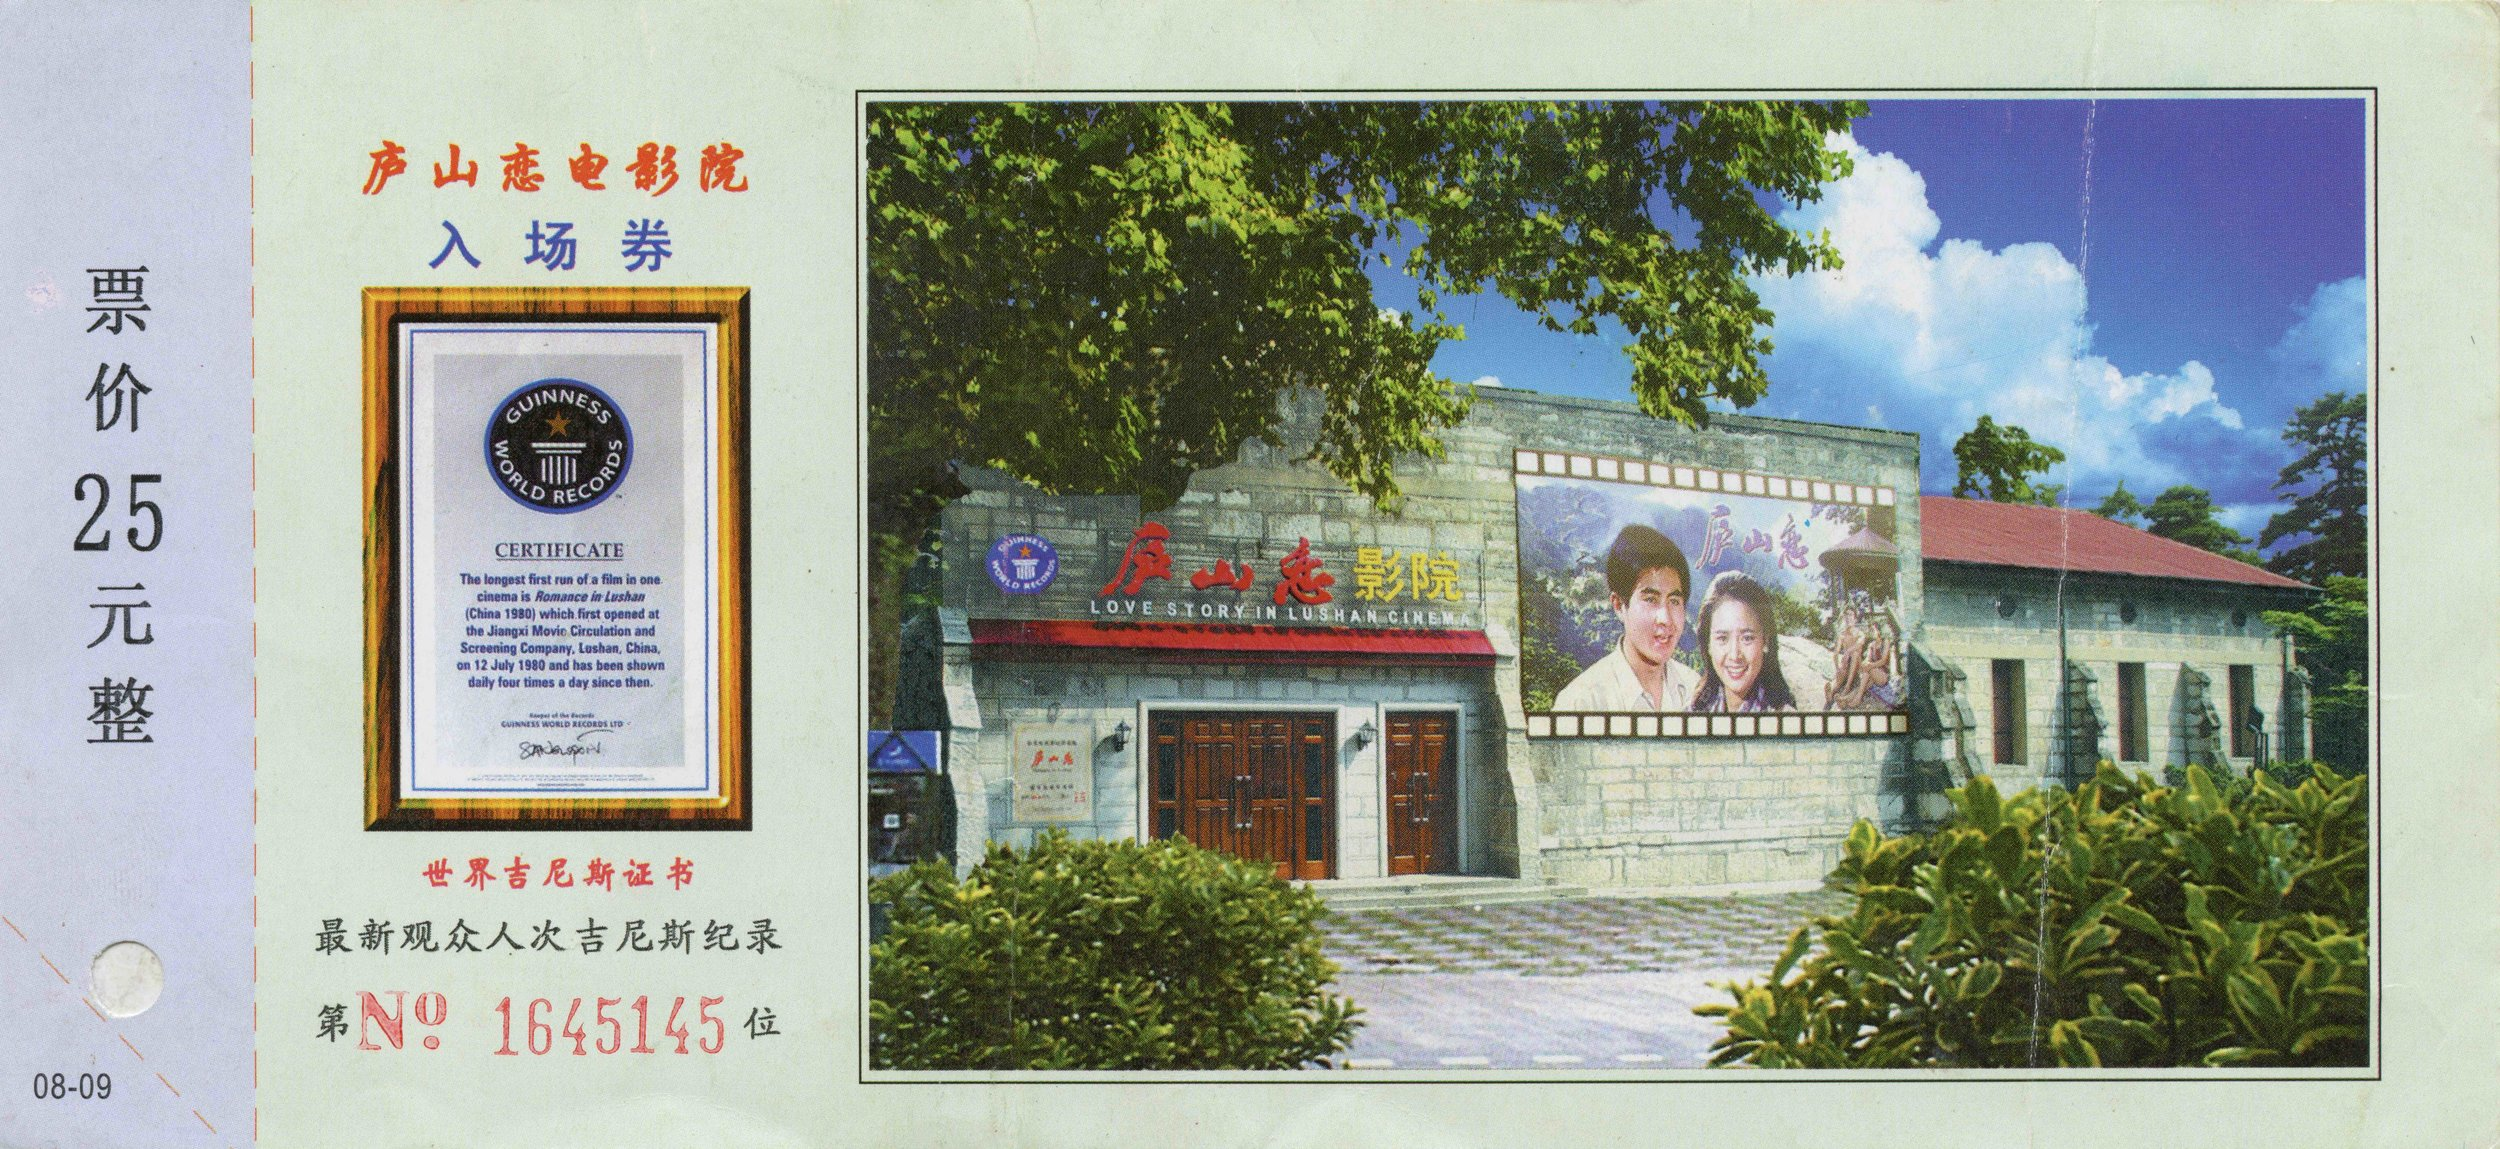 """Ticket for the Romance in Lushan Cinema, built on top of the mountain, where the movie """"Romance on Lushan Mountain"""" has been shown daily since 1980 (earning a Guinness World Record for the Longest First-Run of a Film in One Cinema)"""